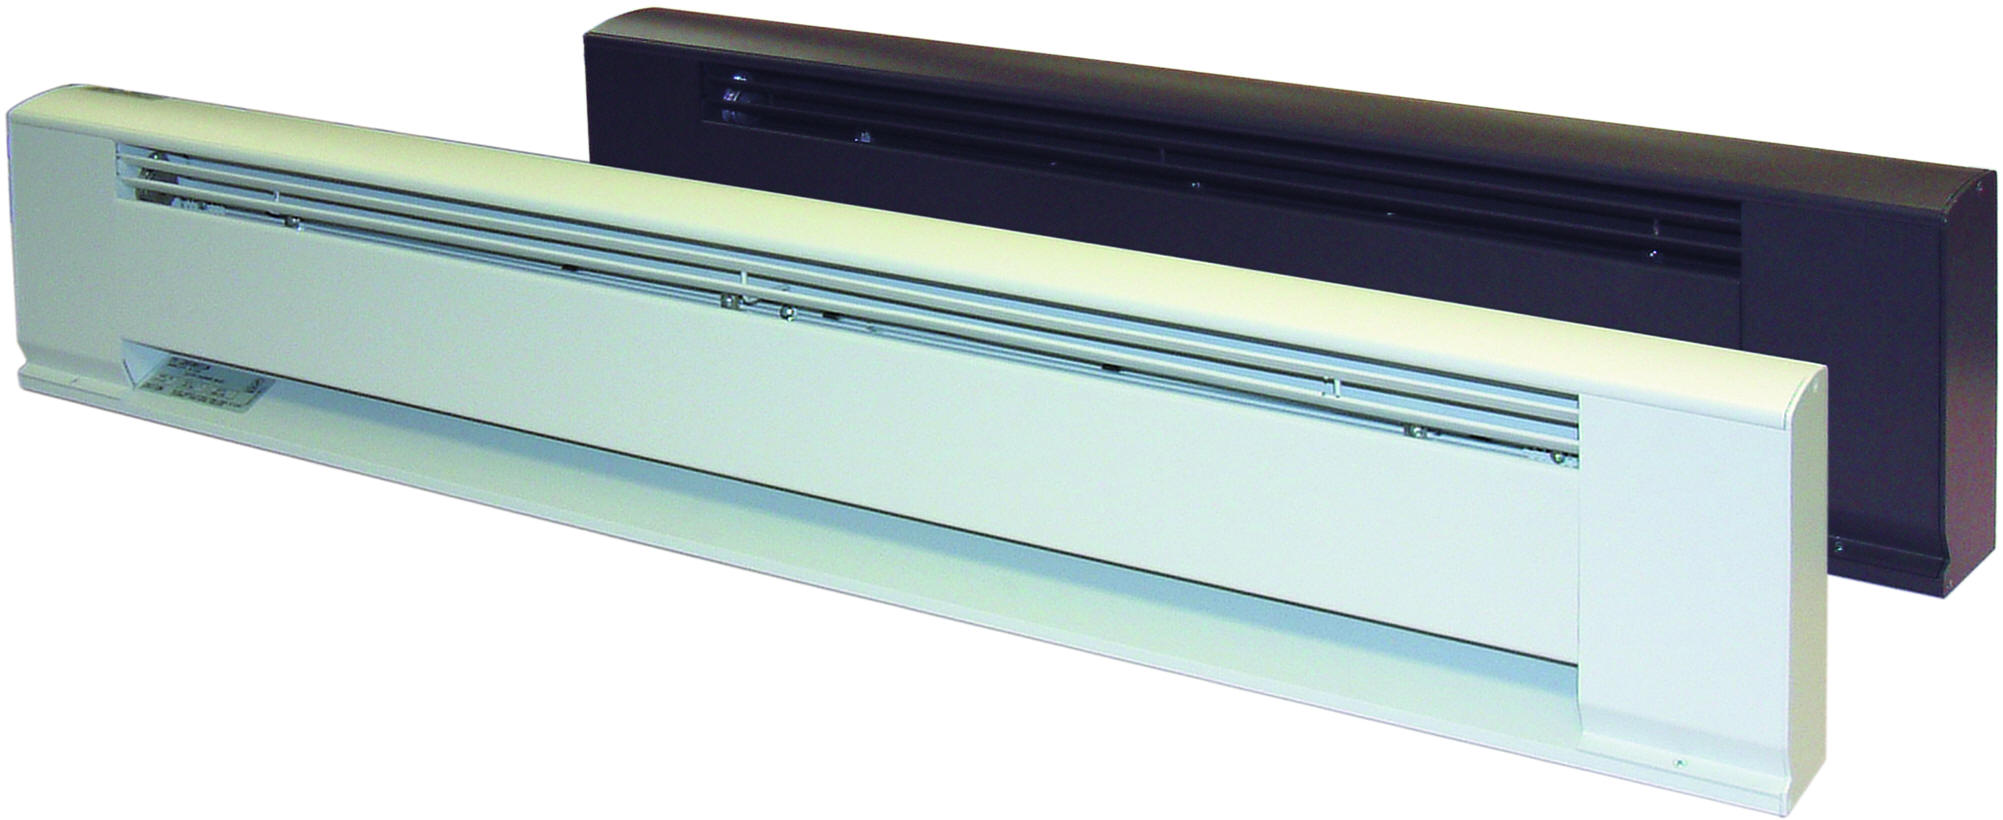 Deluxe Click Here A Larger Image Markel Hydronic Baseboard Heaters Hot Water Baseboard Heater Parts Hot Water Baseboard Heat Radiator Covers houzz-02 Hot Water Baseboard Heat